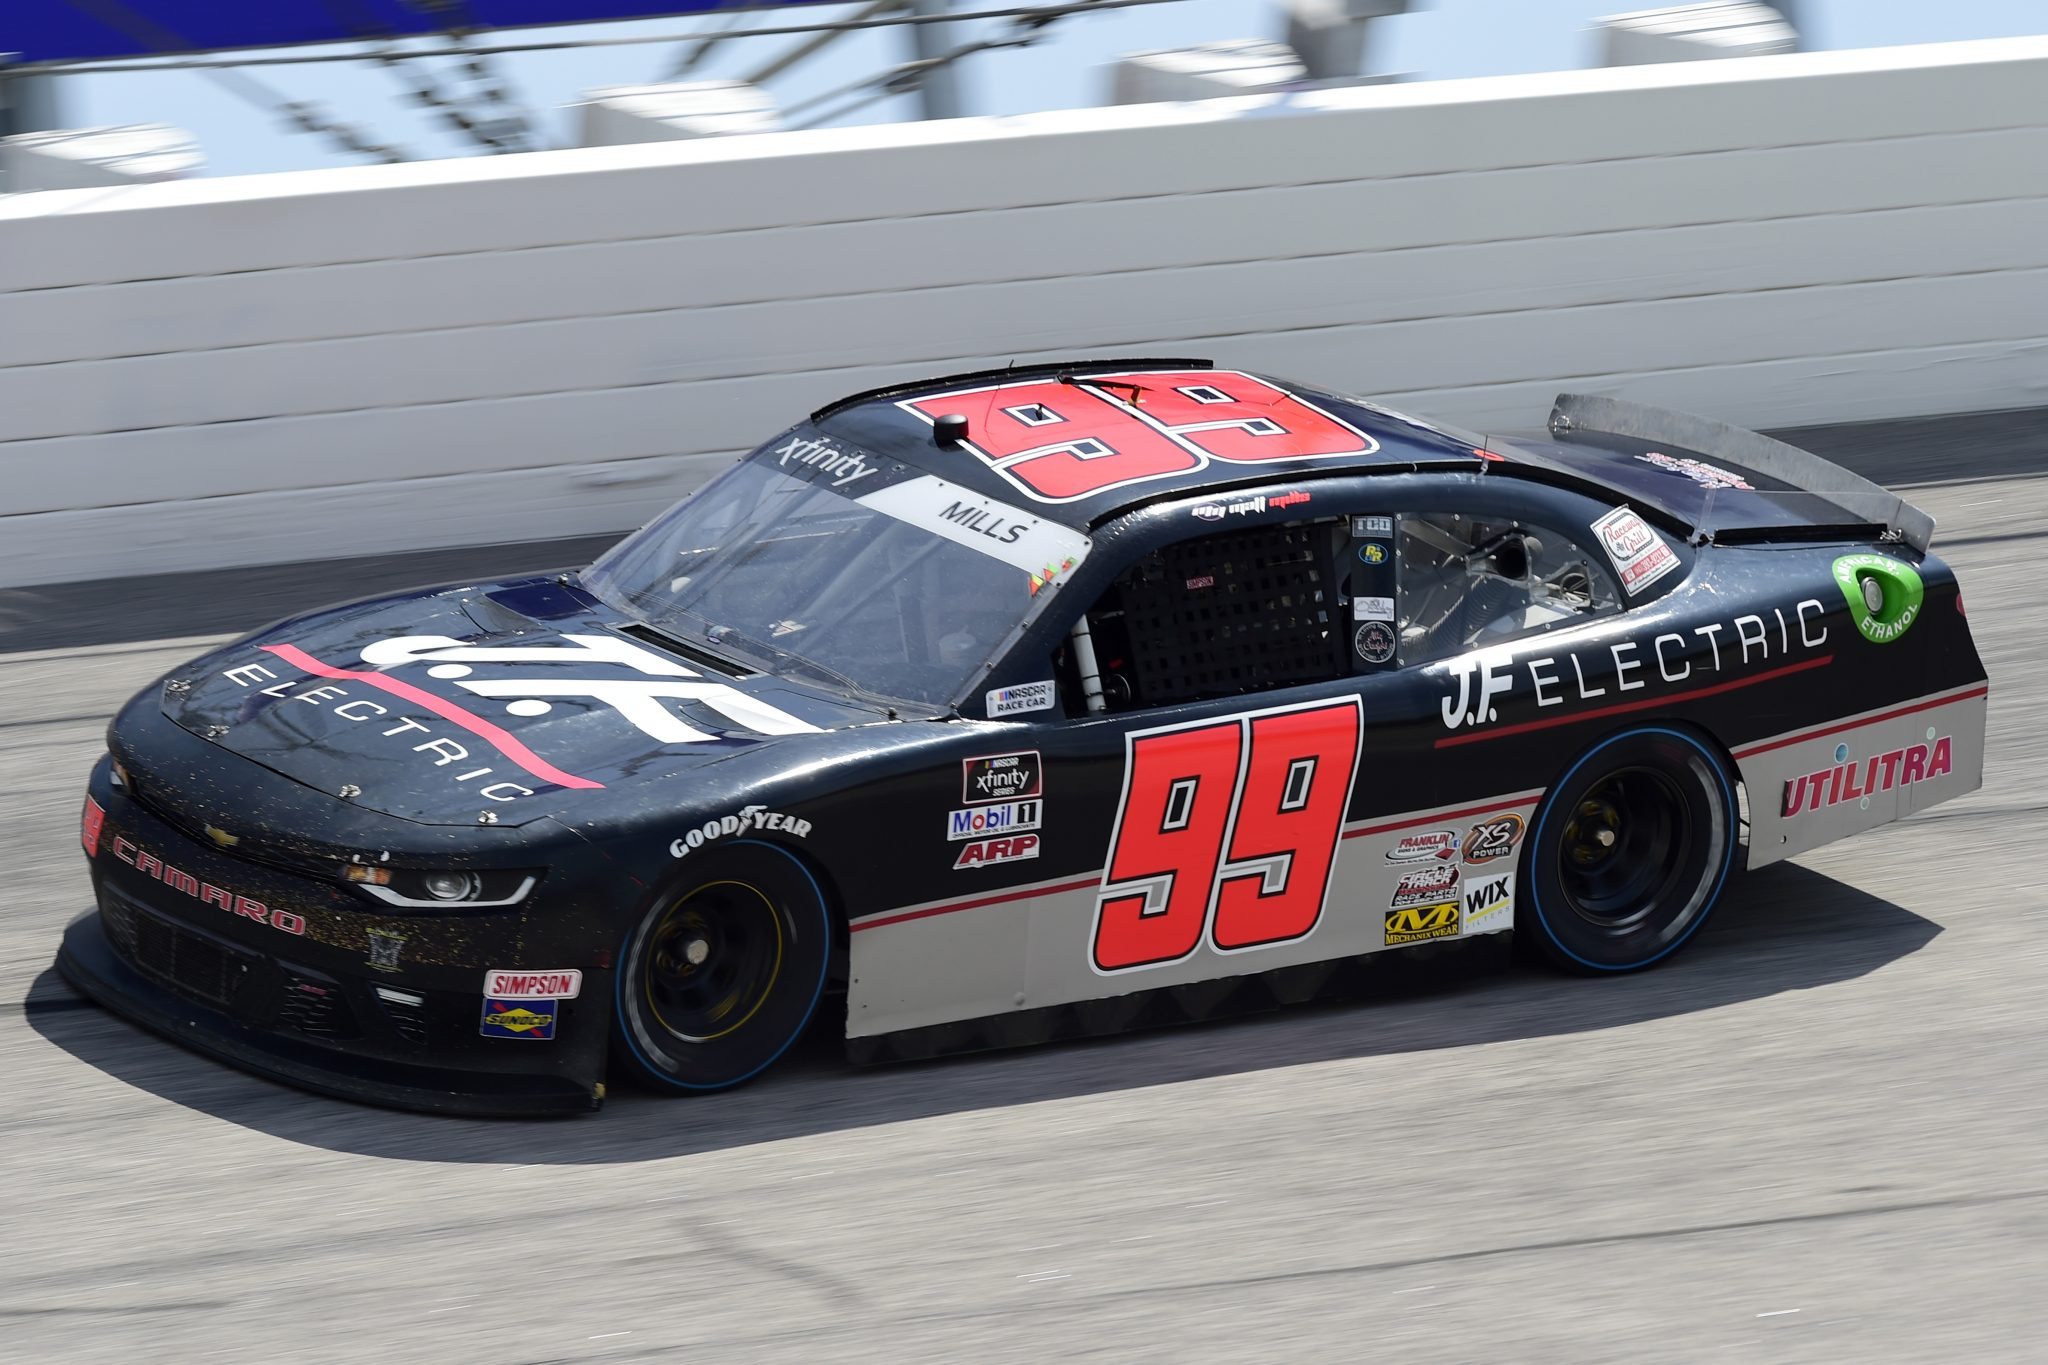 DARLINGTON, SOUTH CAROLINA - SEPTEMBER 05: Matt Mills, driver of the #99 JF Electric Toyota, drives during the NASCAR Xfinity Series Sport Clips Haircuts VFW 200 at Darlington Raceway on September 05, 2020 in Darlington, South Carolina. (Photo by Jared C. Tilton/Getty Images) | Getty Images